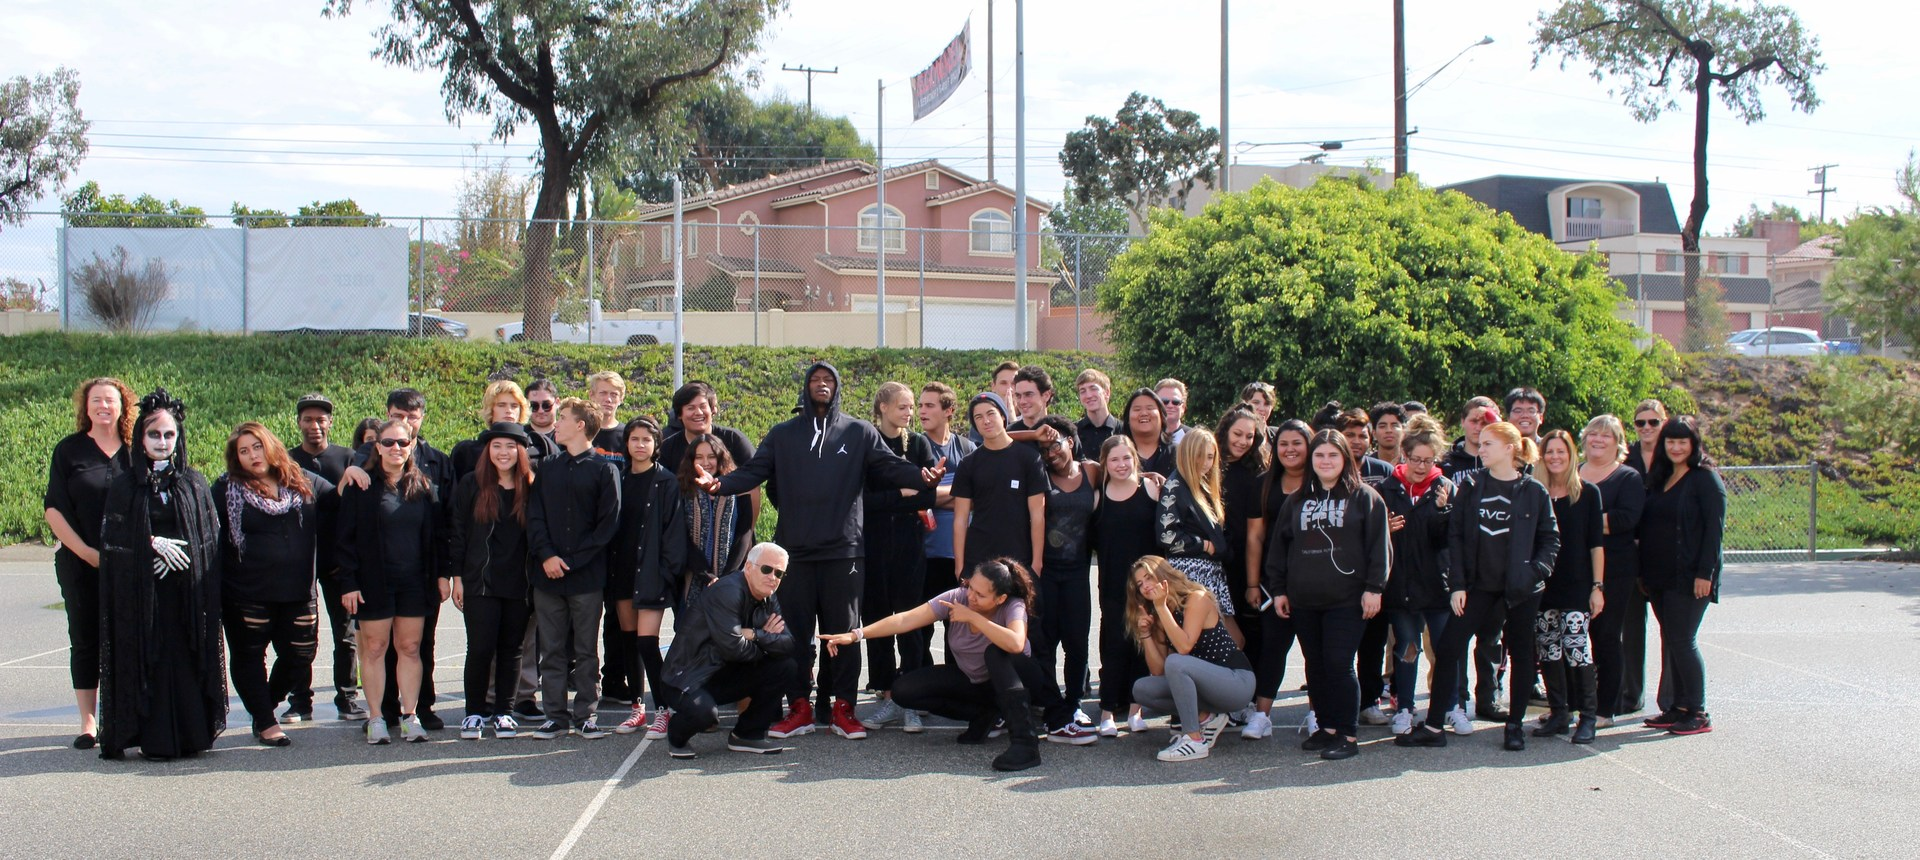 Redondo Shores, students and staff: Clad in Black Day.